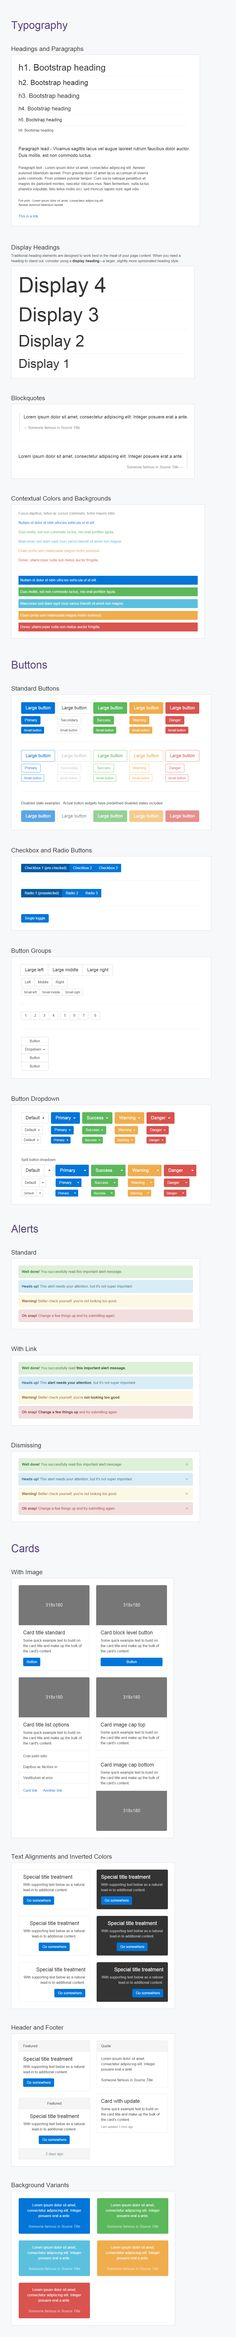 Bootstrap 4 UI Kit - Axure Widget Library  - The most comprehensive Bootstrap widget library ever assembled.